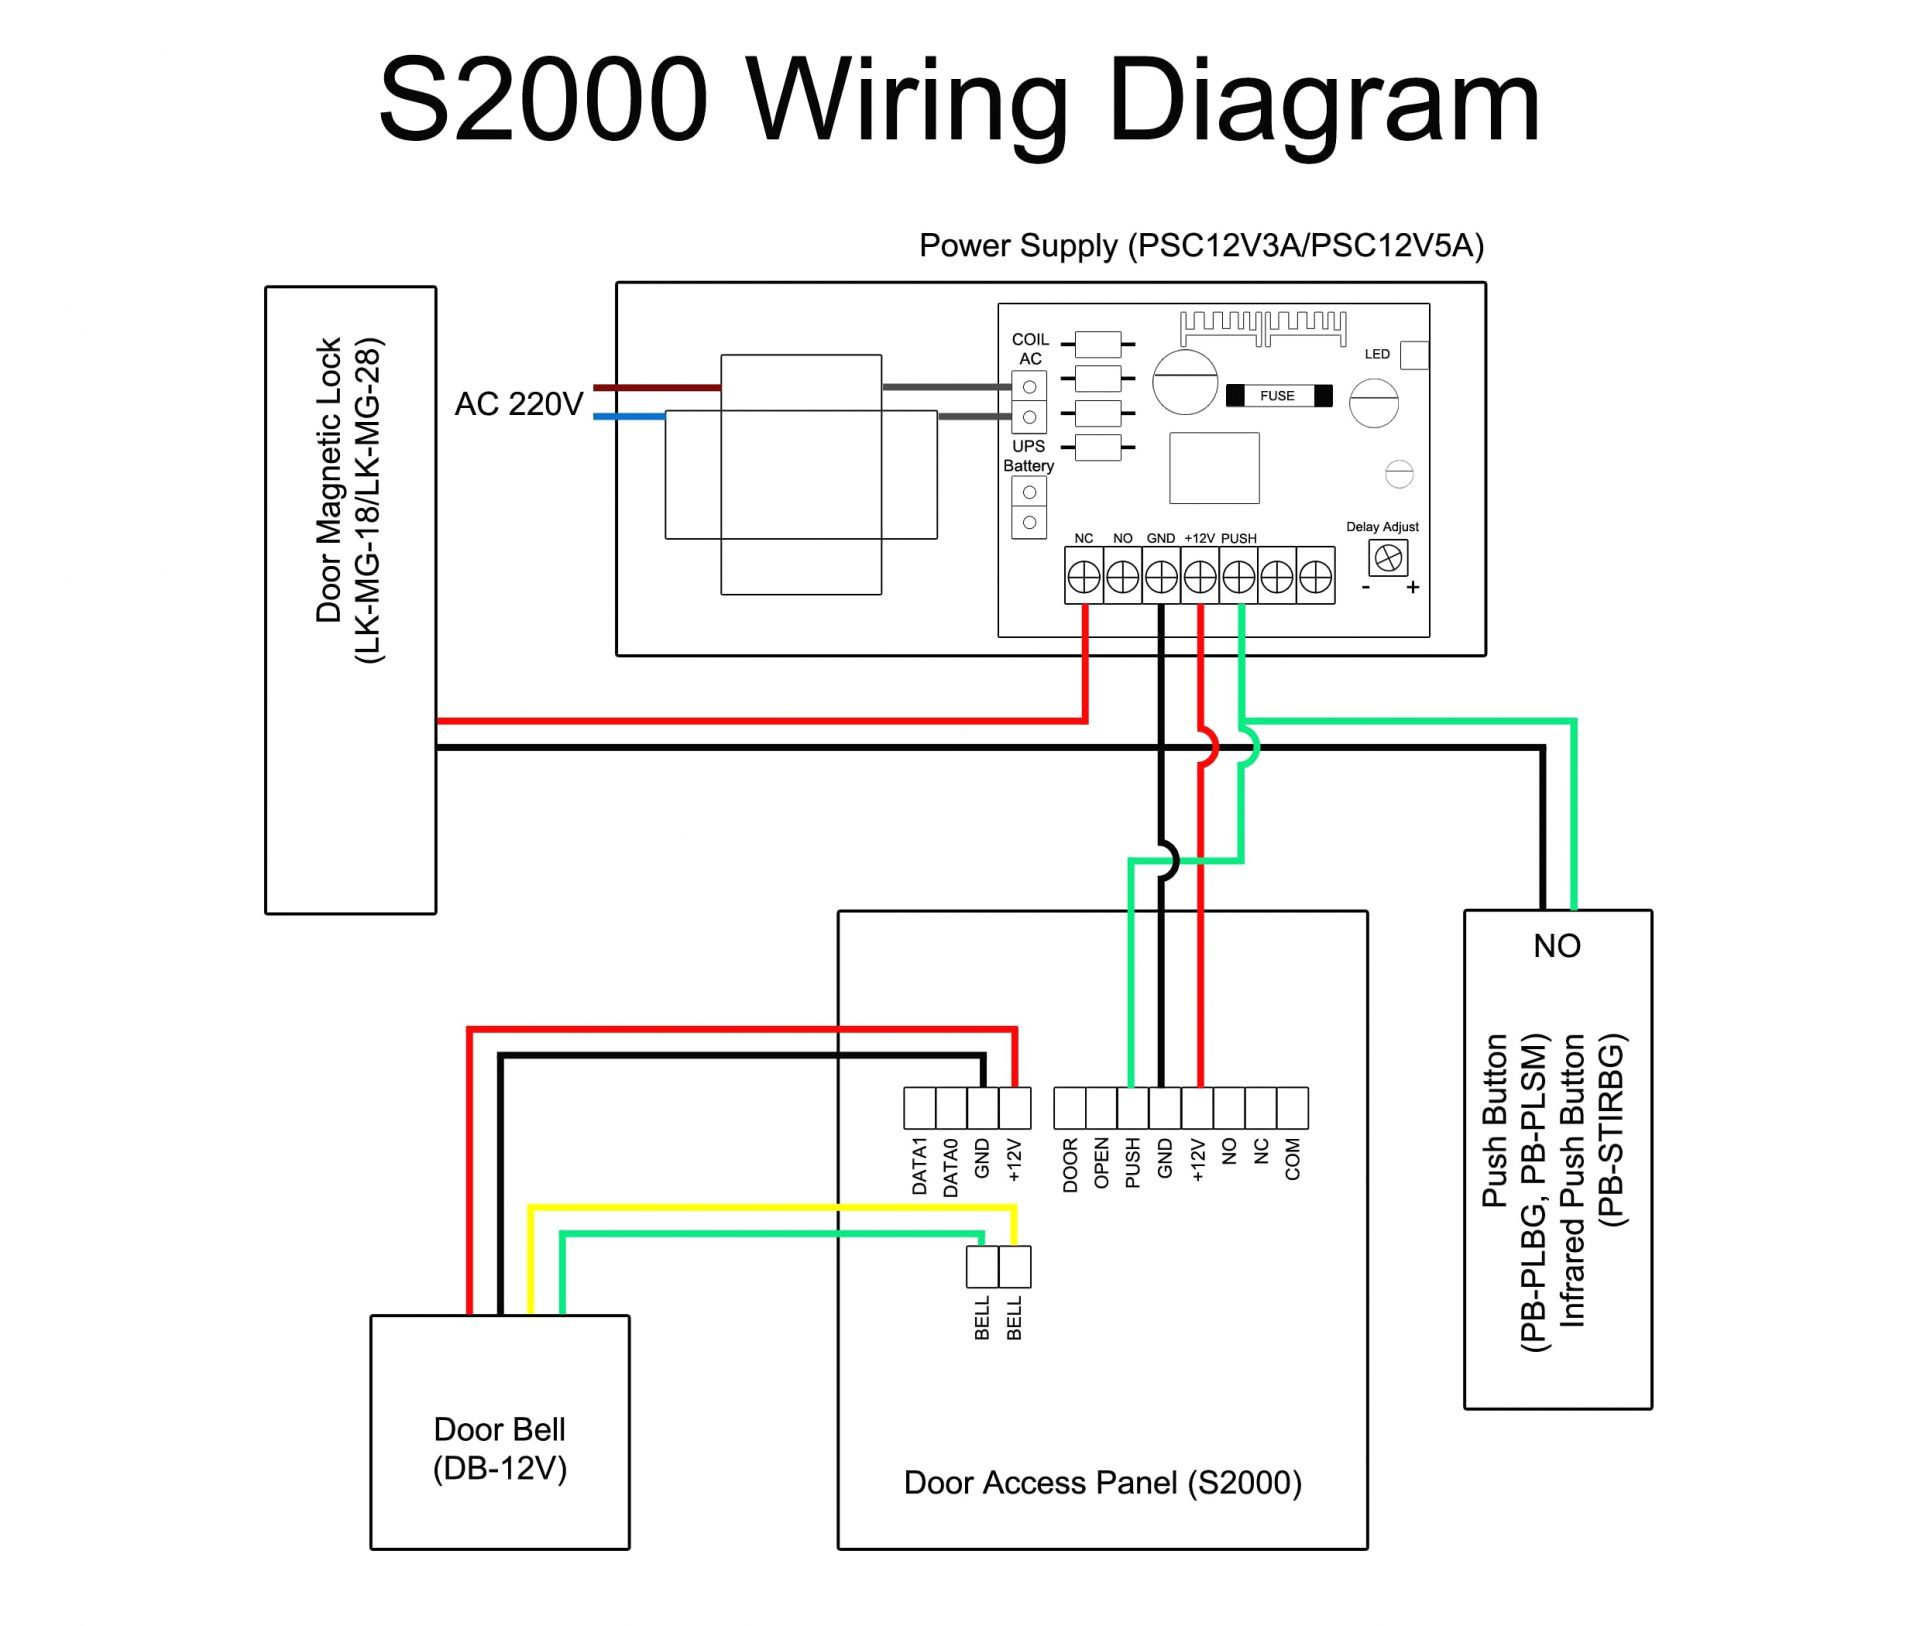 voyager camera wiring diagram Collection-Security Camera Wiring Diagram Inspirational Generous Color Cmos Camerasg6153 Contemporary 20-g